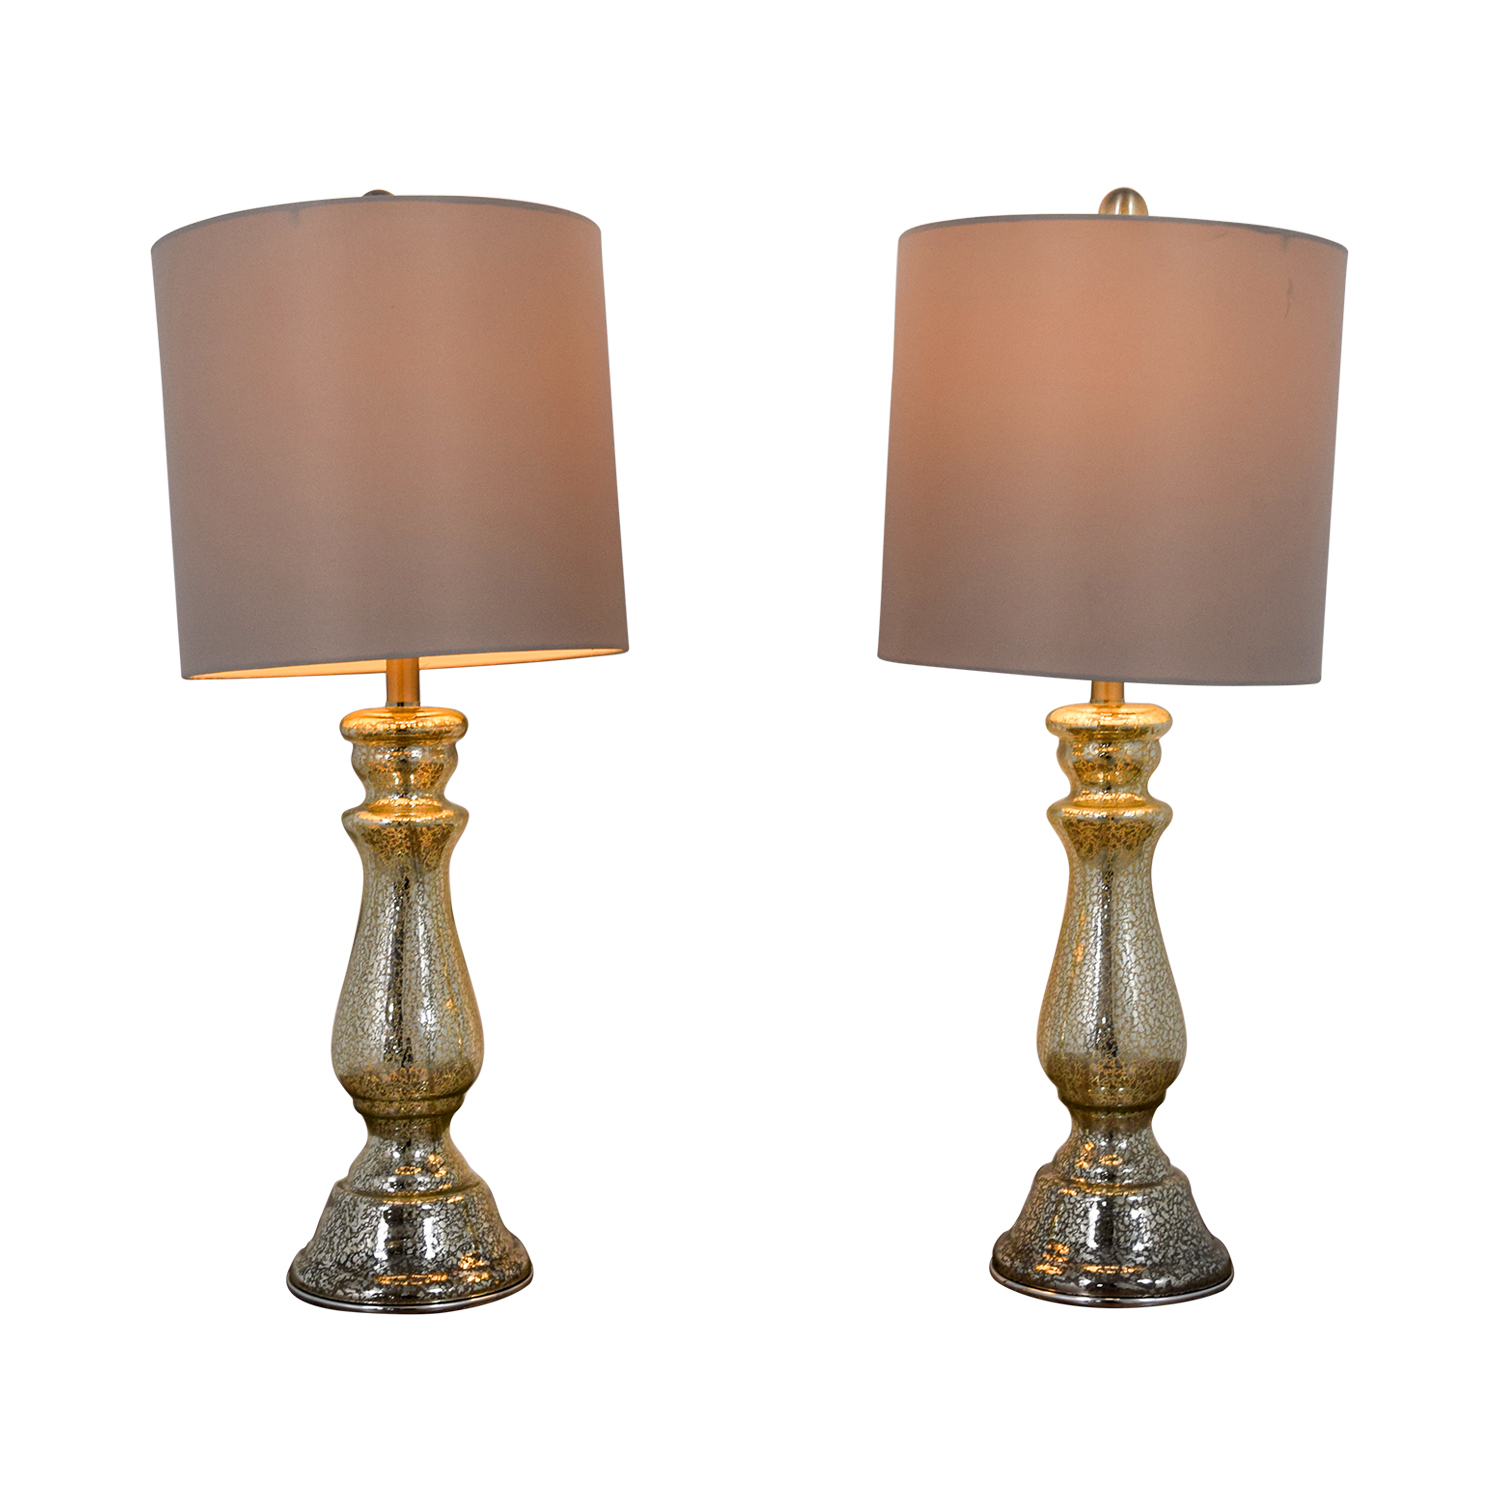 Mercury Glass Table Lamps dimensions